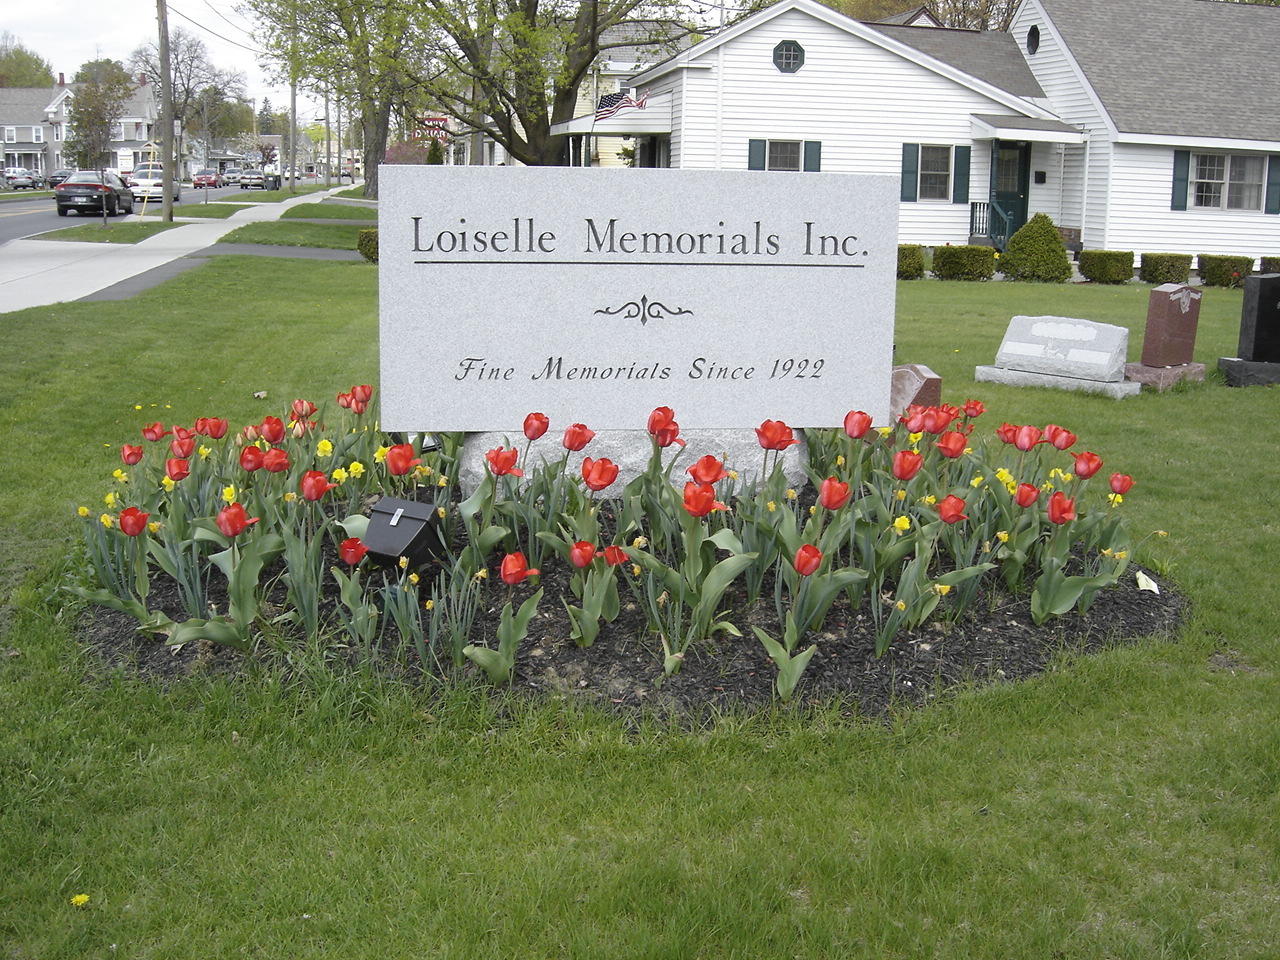 Image of a custom cemetery memorial monument headstone in the Glens Falls, NY area made by Loiselle Memorials in Hudson Falls, NY